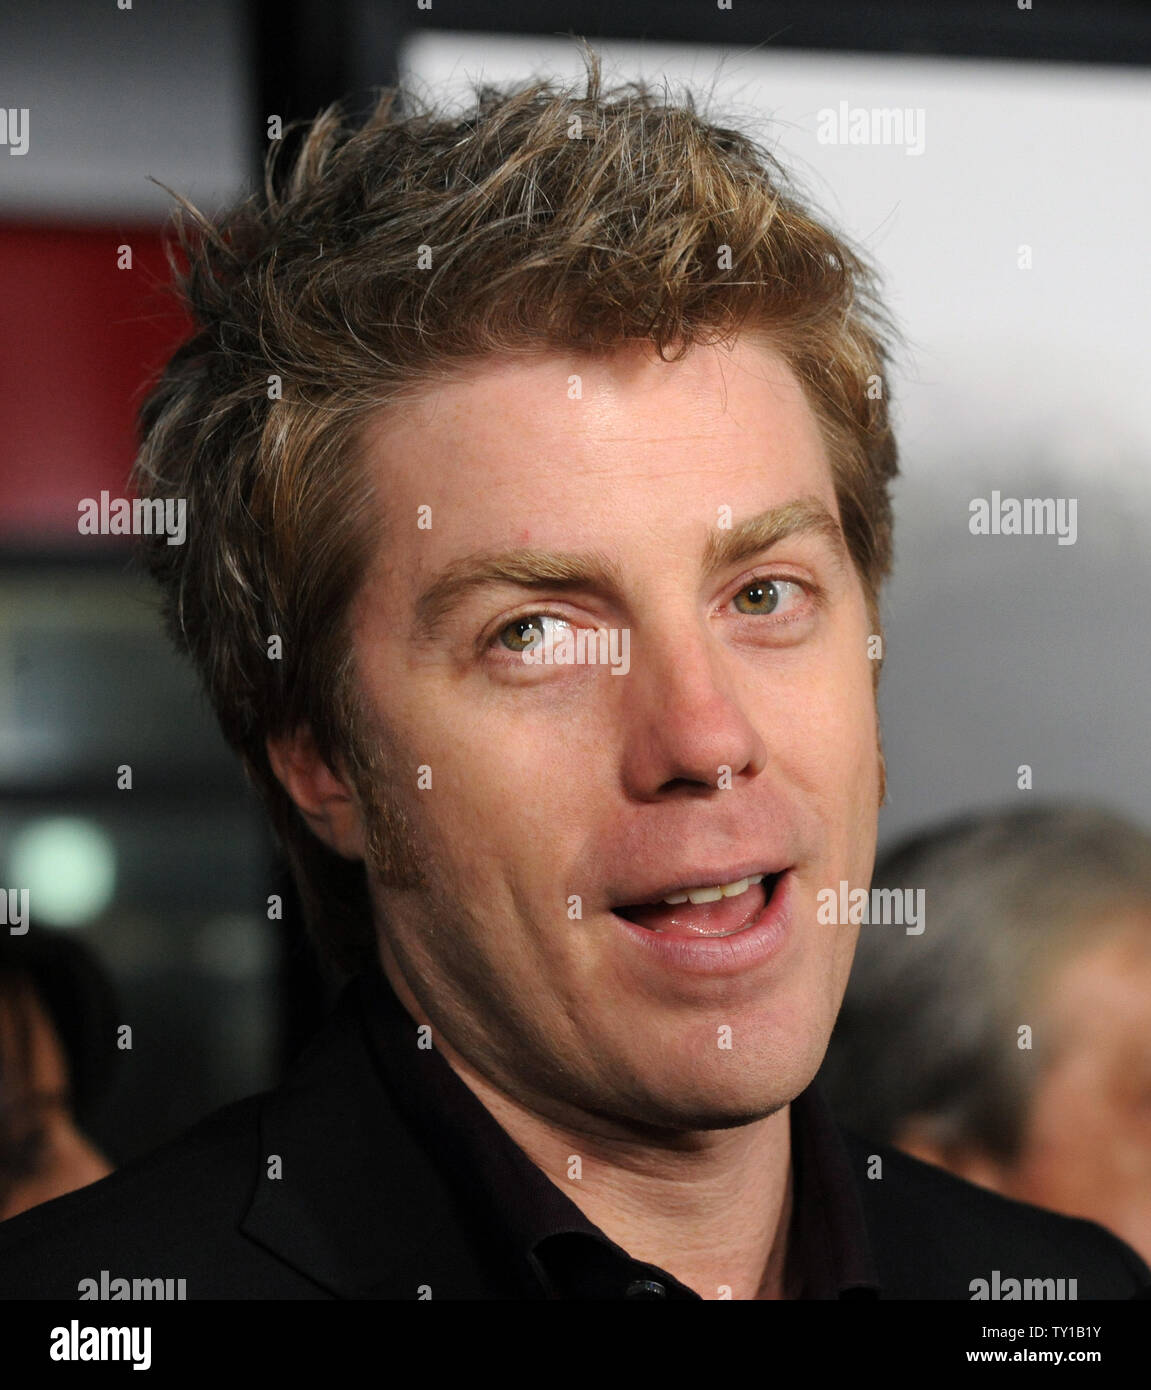 Kyle Eastwood attends Clint Eastwood's new biographic drama motion picture 'Invictus' in Beverly Hills, California on December 3, 2009. Morgan Freeman portrays Nelson Mandela, in his first term as the South African President, initiates a unique venture to unite the apartheid-torn land: enlist the national rugby team on a mission to win the 1995 Rugby World Cup.     UPI/Jim Ruymen - Stock Image